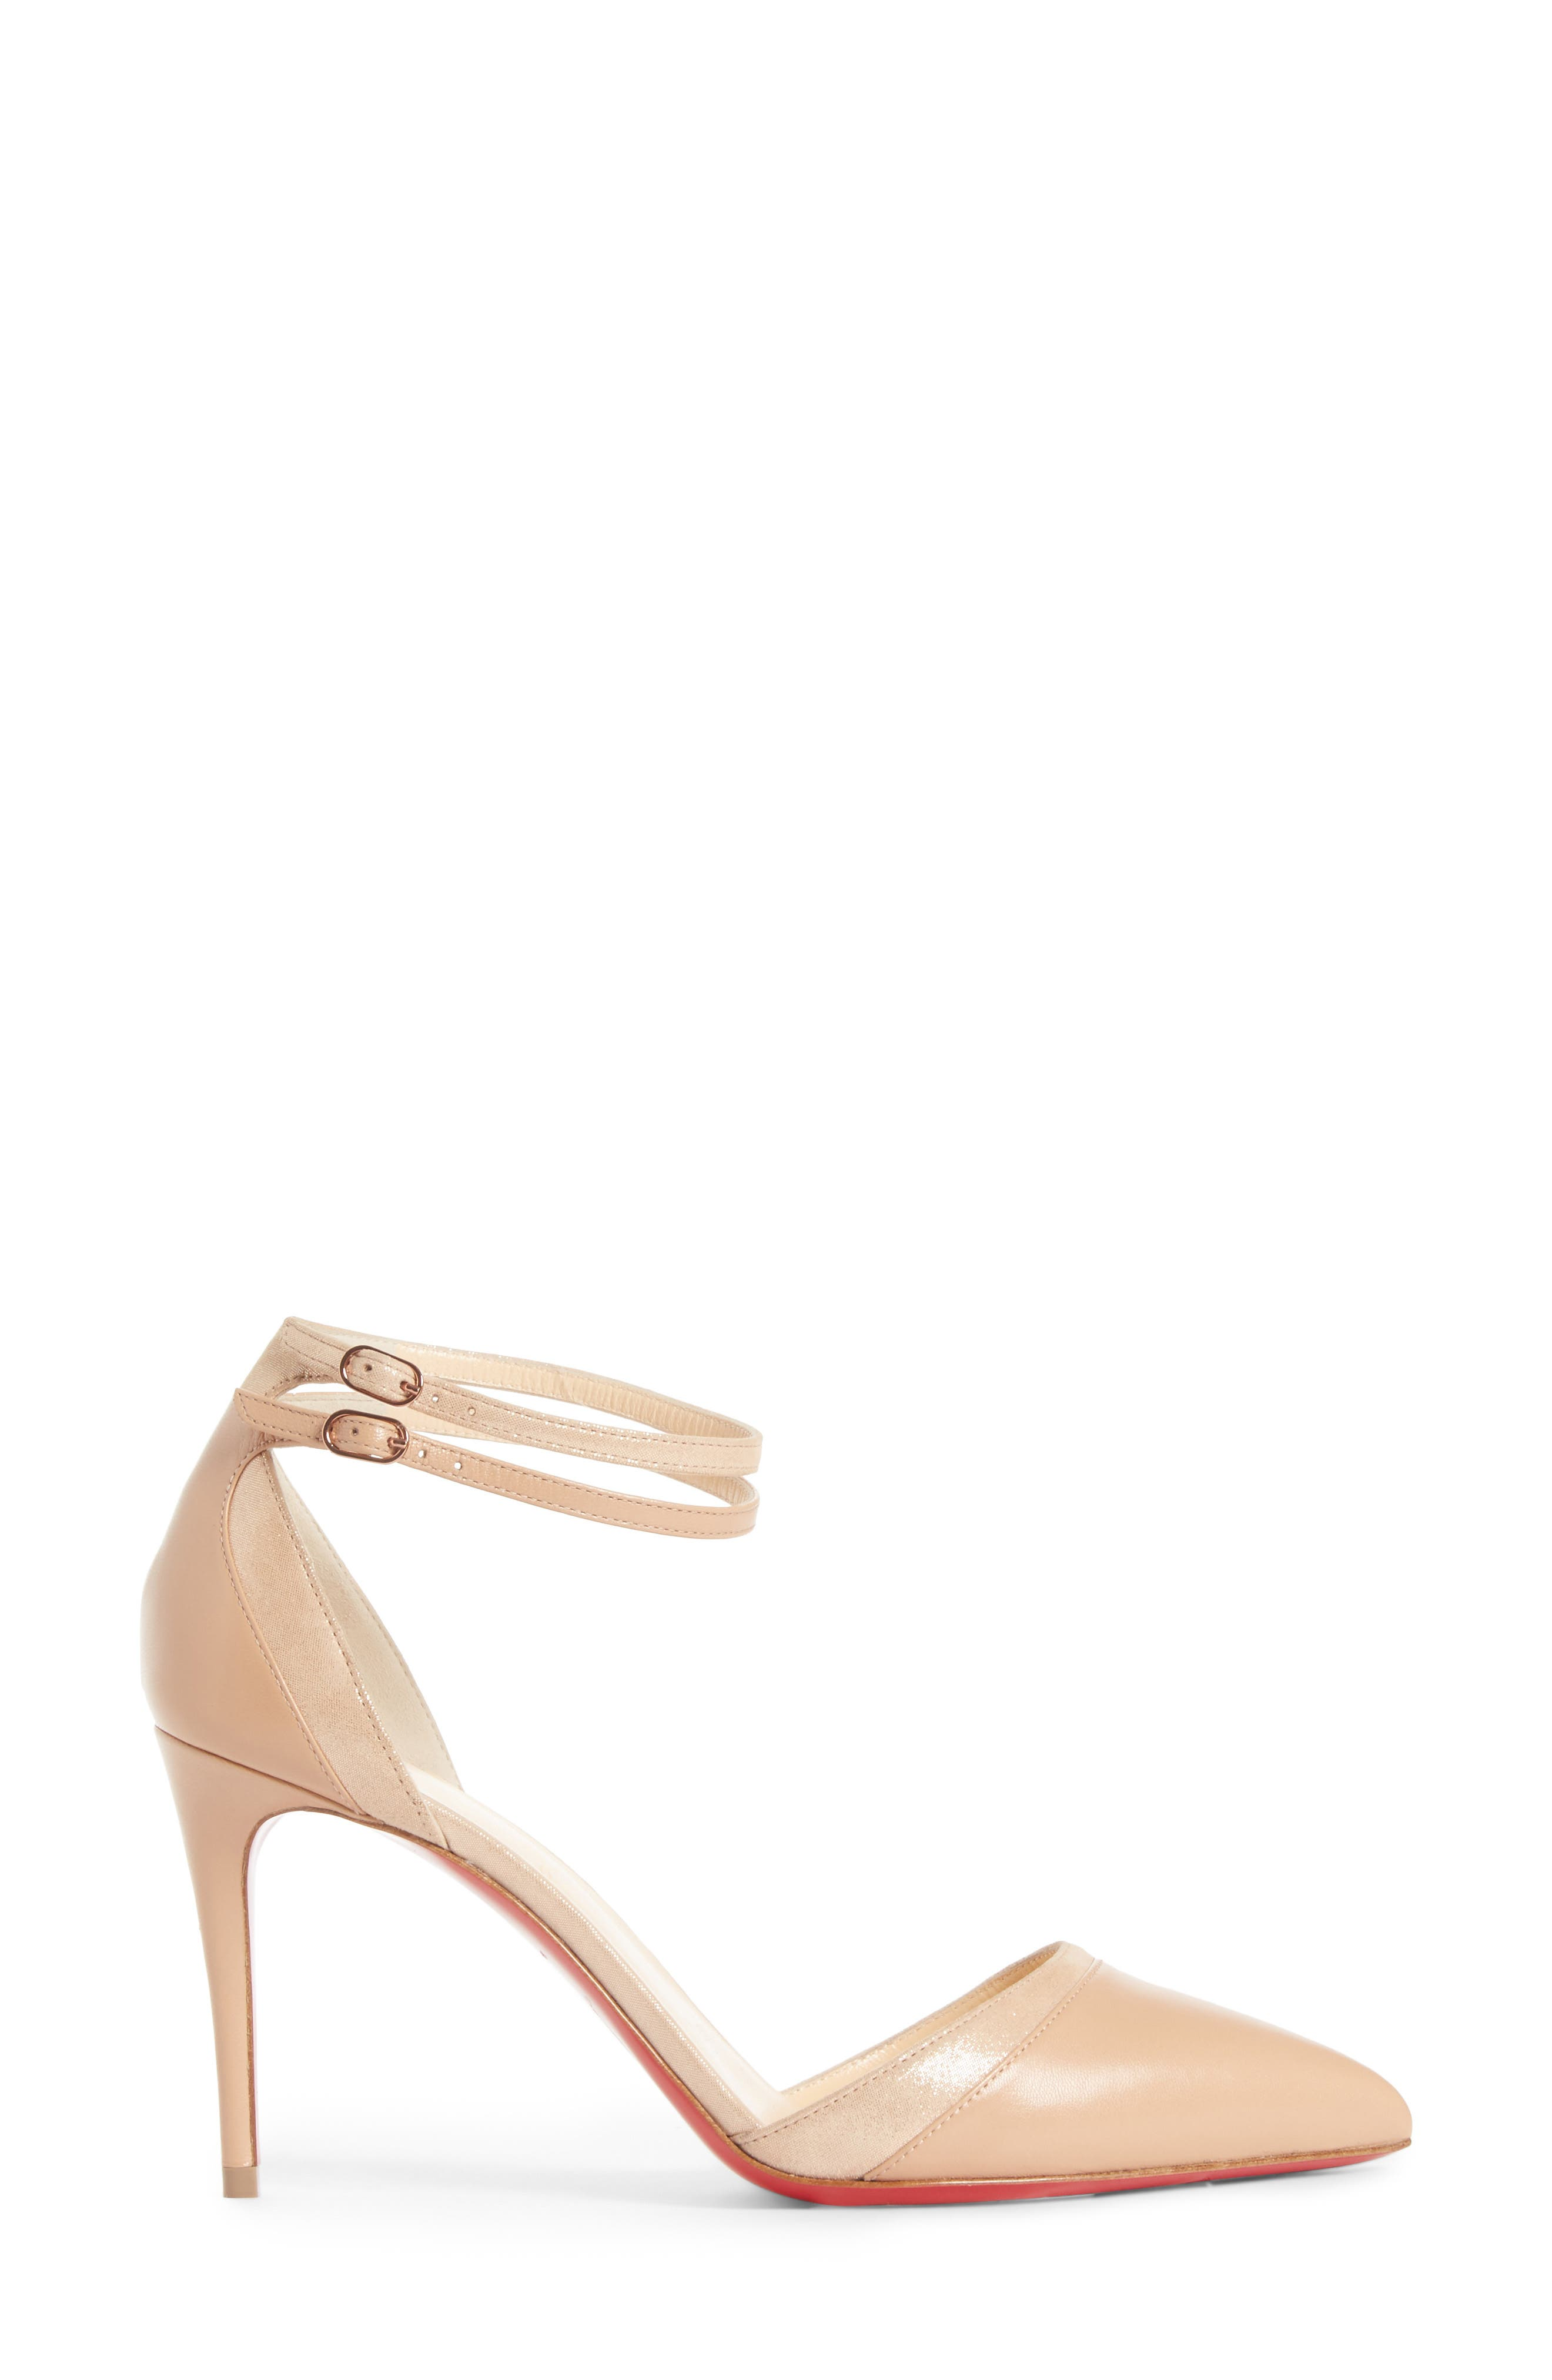 Uptown Ankle Strap Pump,                             Alternate thumbnail 3, color,                             Nude